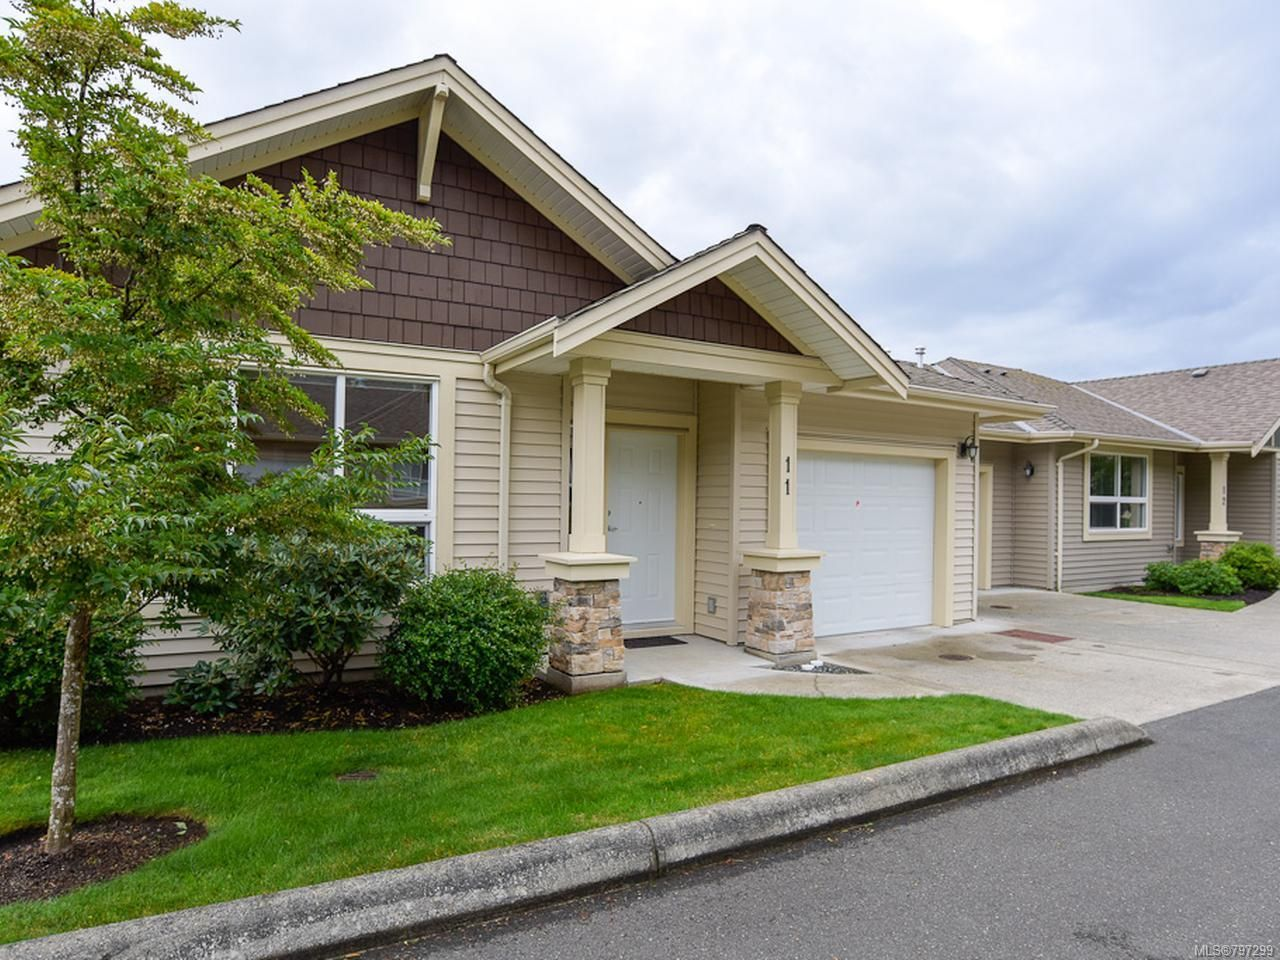 Main Photo: 11 730 Aspen Rd in COMOX: CV Comox (Town of) Row/Townhouse for sale (Comox Valley)  : MLS®# 797299